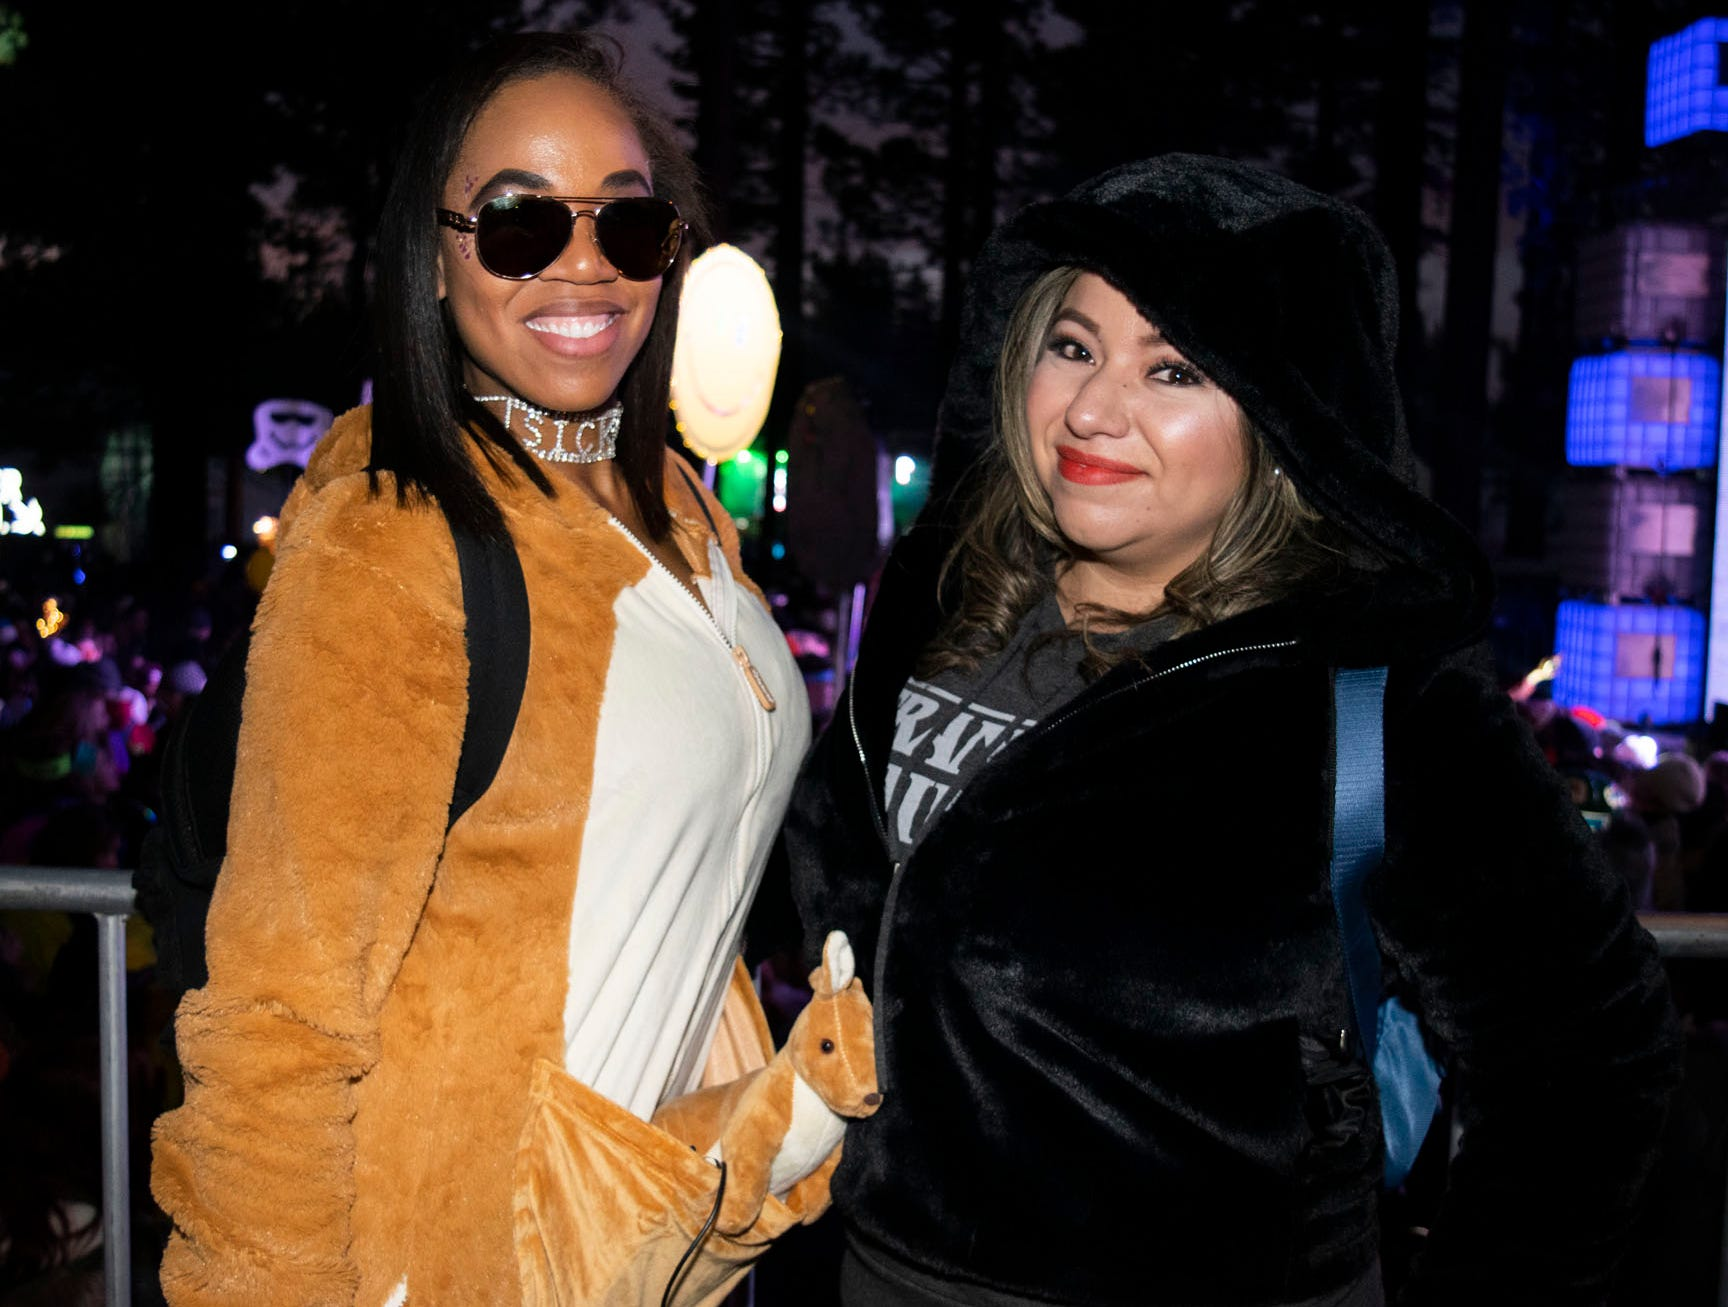 Shawna Wimberly and Jessica Rios attend the Snowglobe Music Festival on Saturday, Dec. 29, 2018. South Lake Tahoe, Calif.